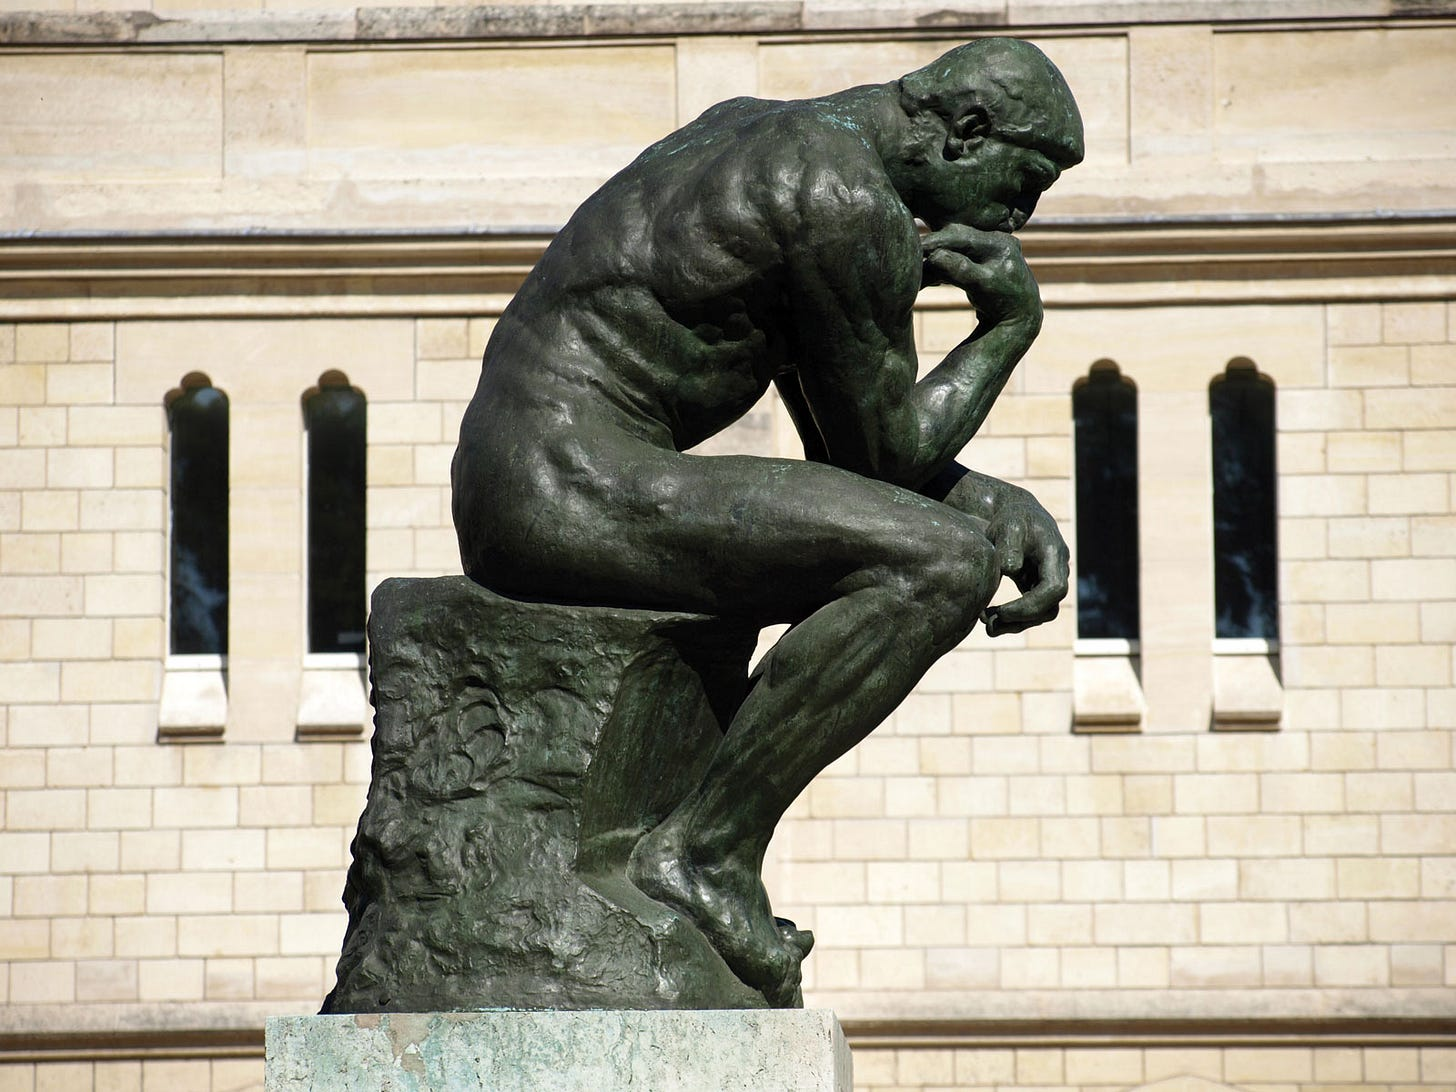 The Thinker | History, Description, & Facts | Britannica